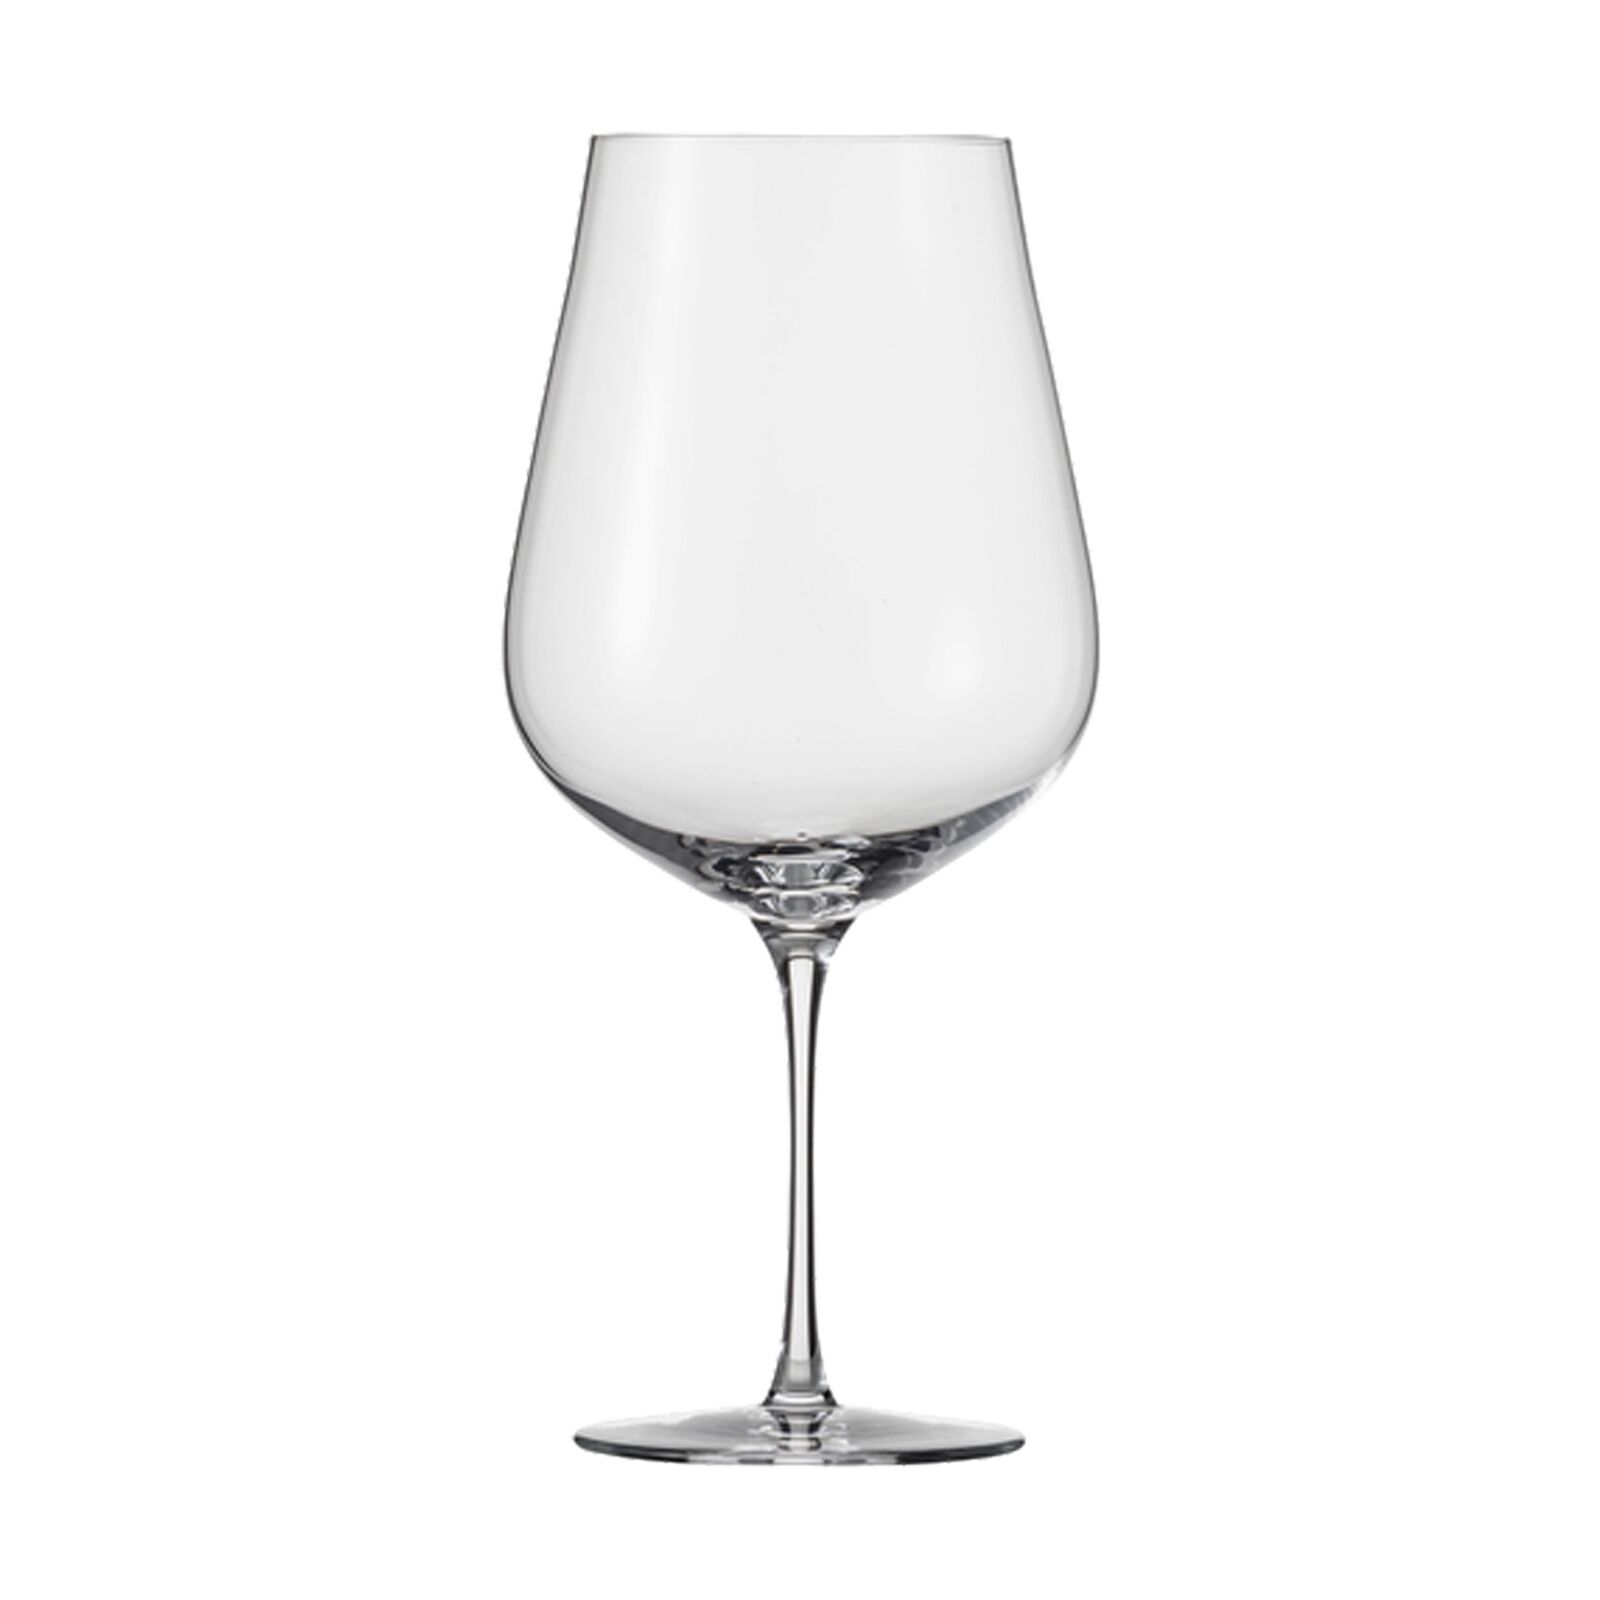 Schott Zwiesel - Air - 6 Calici Vino rouge Bordeaux 130 h cm 23,2 - Rivenditore